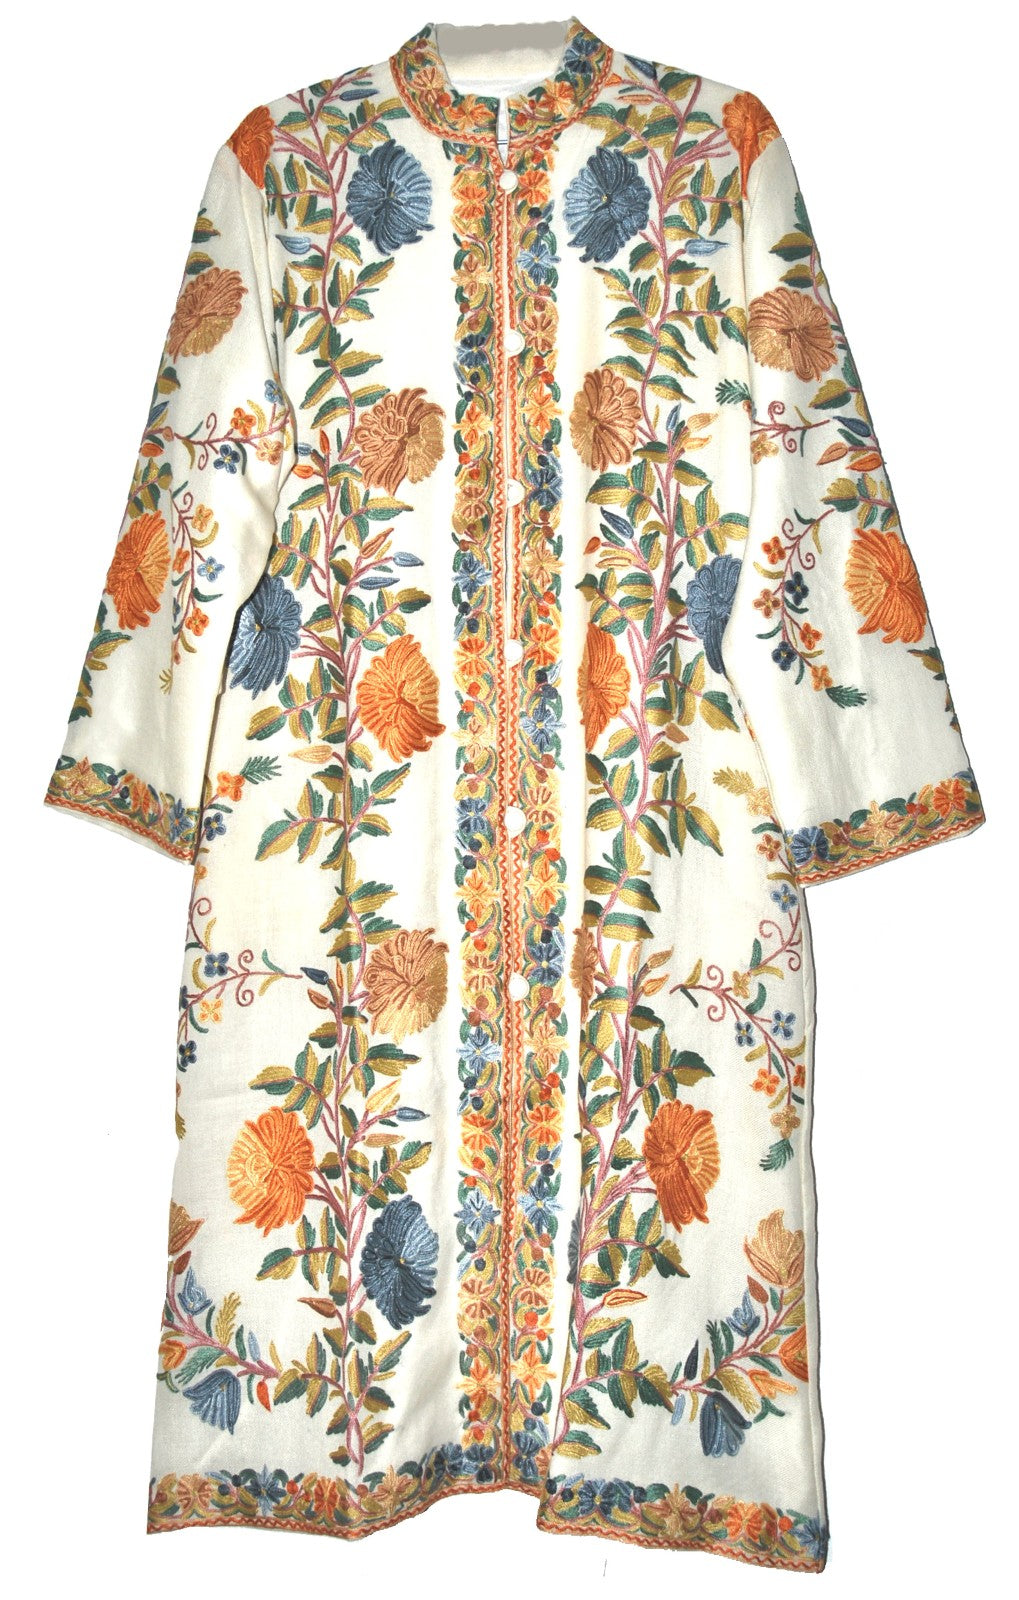 Woolen Coat Long Jacket White, Multicolor Embroidery #AO-168